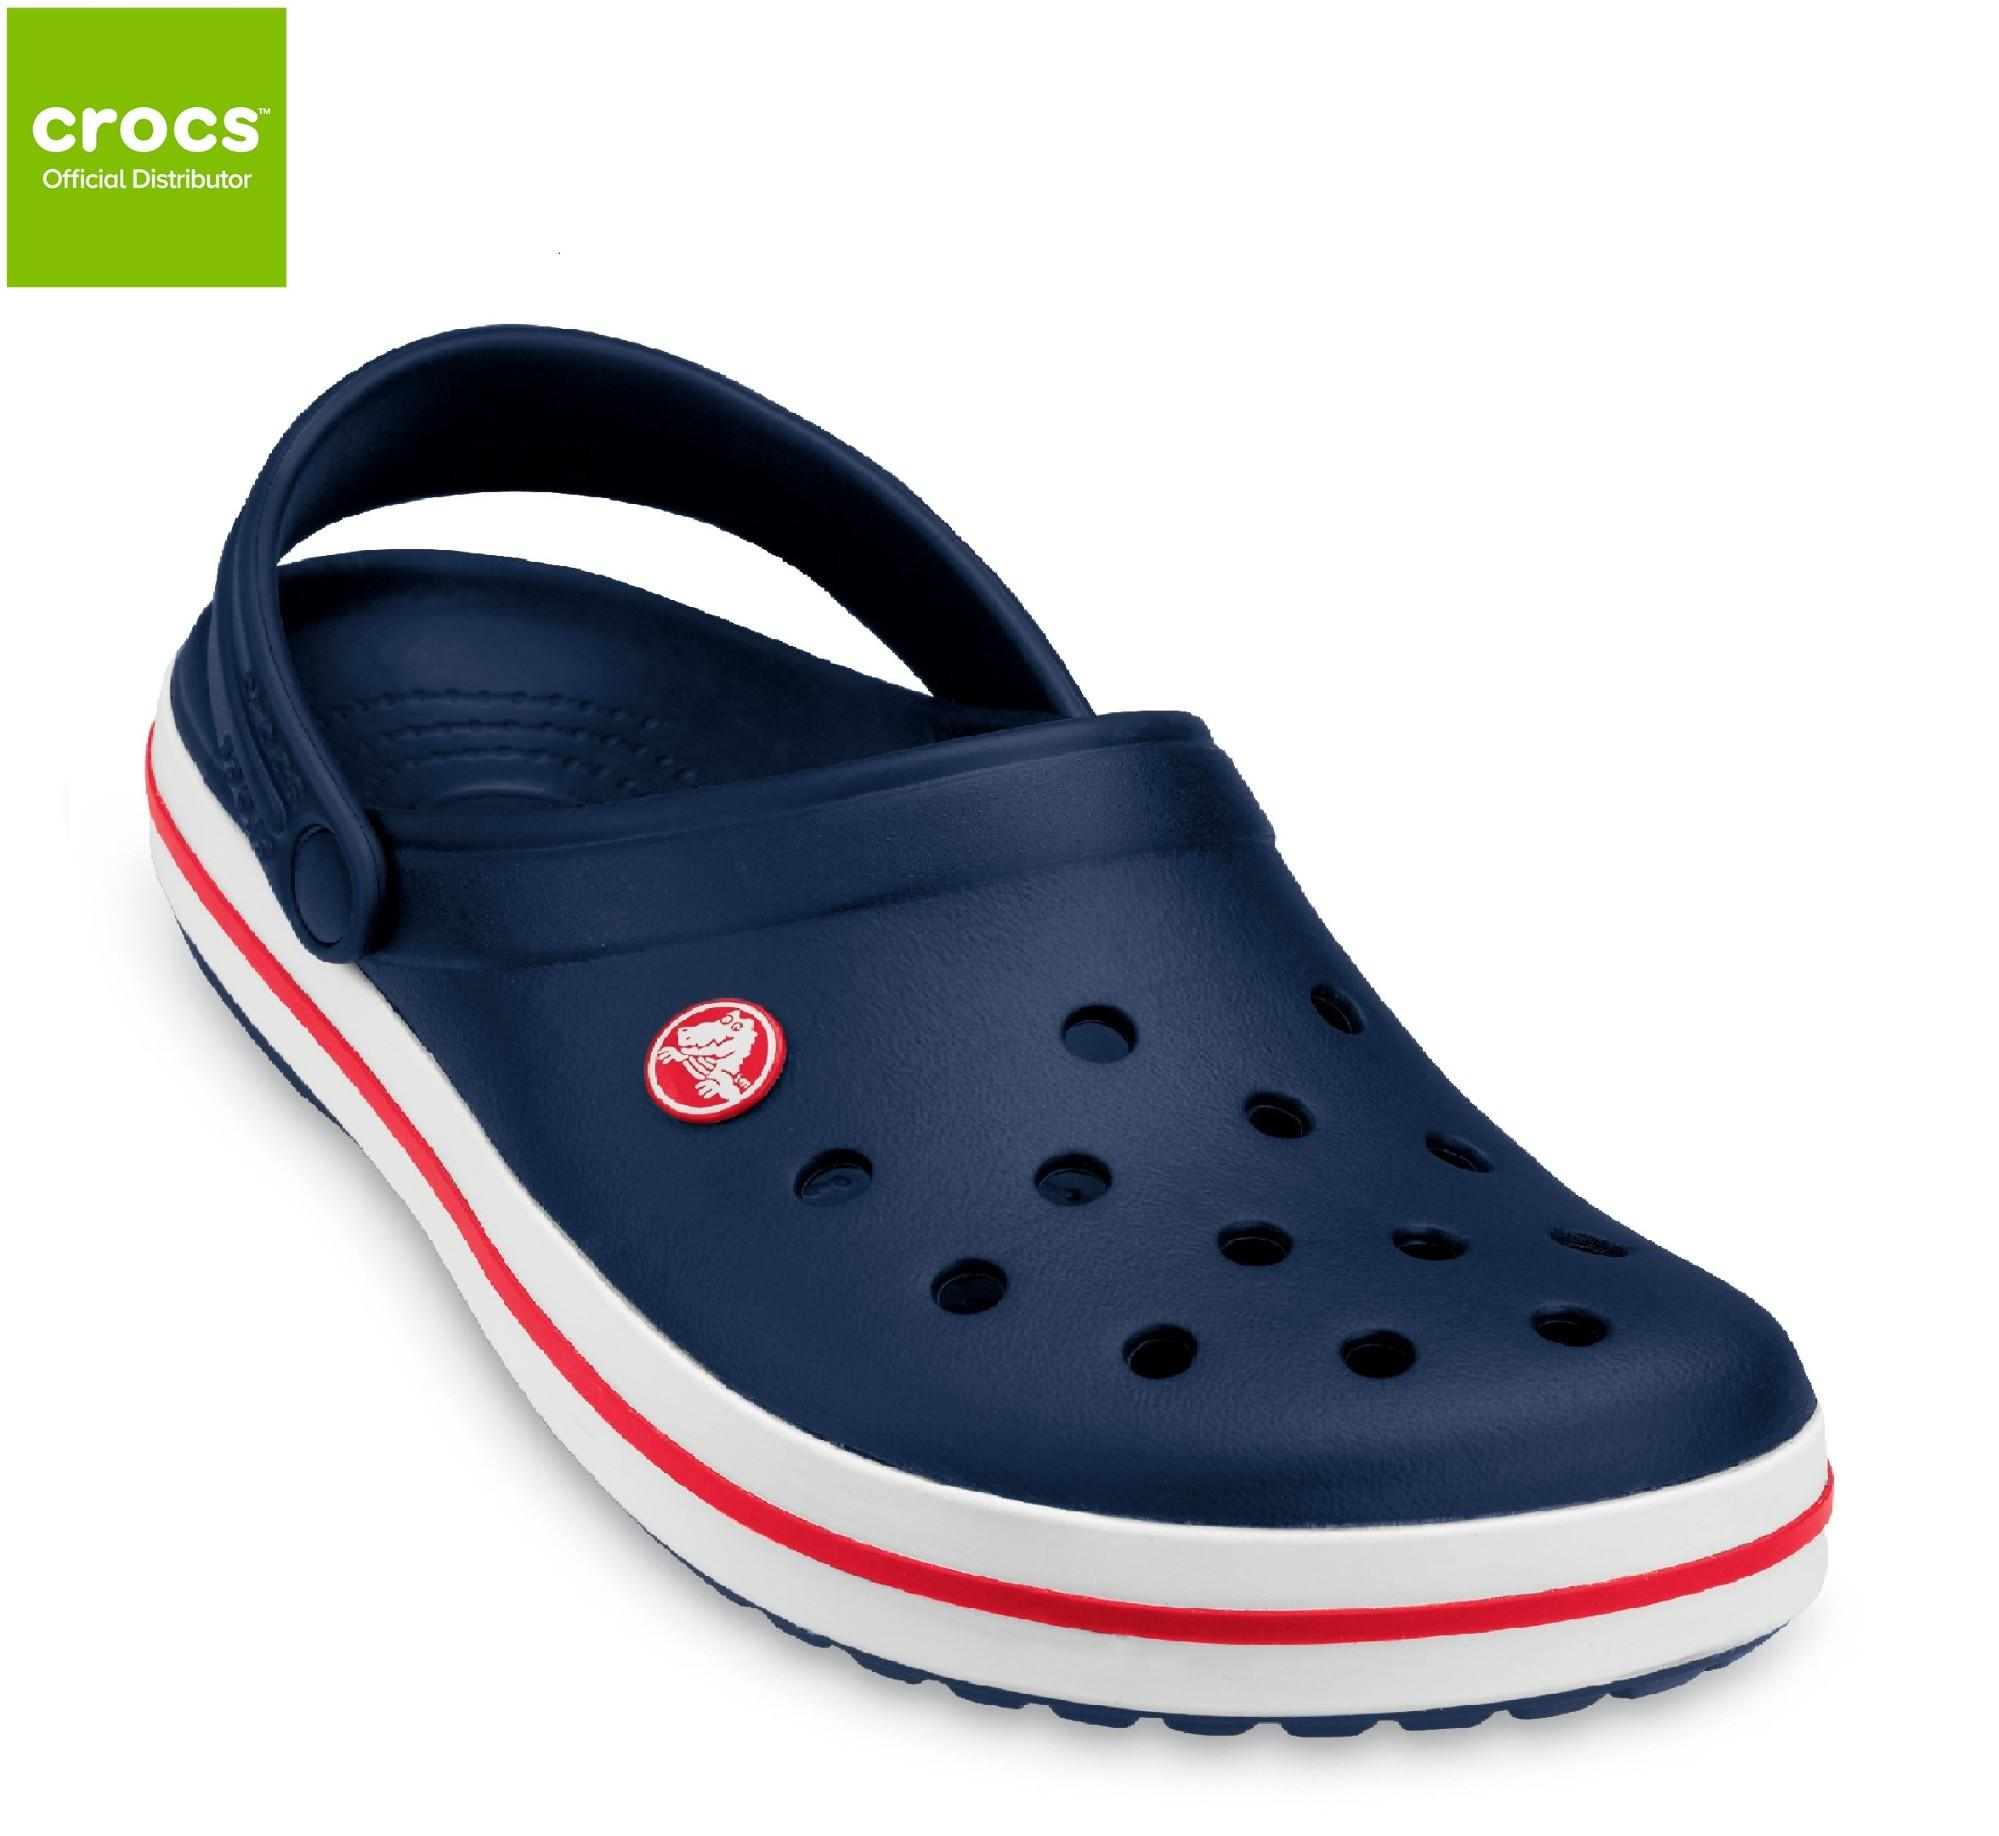 a98cbf4c09b70 Crocs Philippines  Crocs price list - Crocs Flats